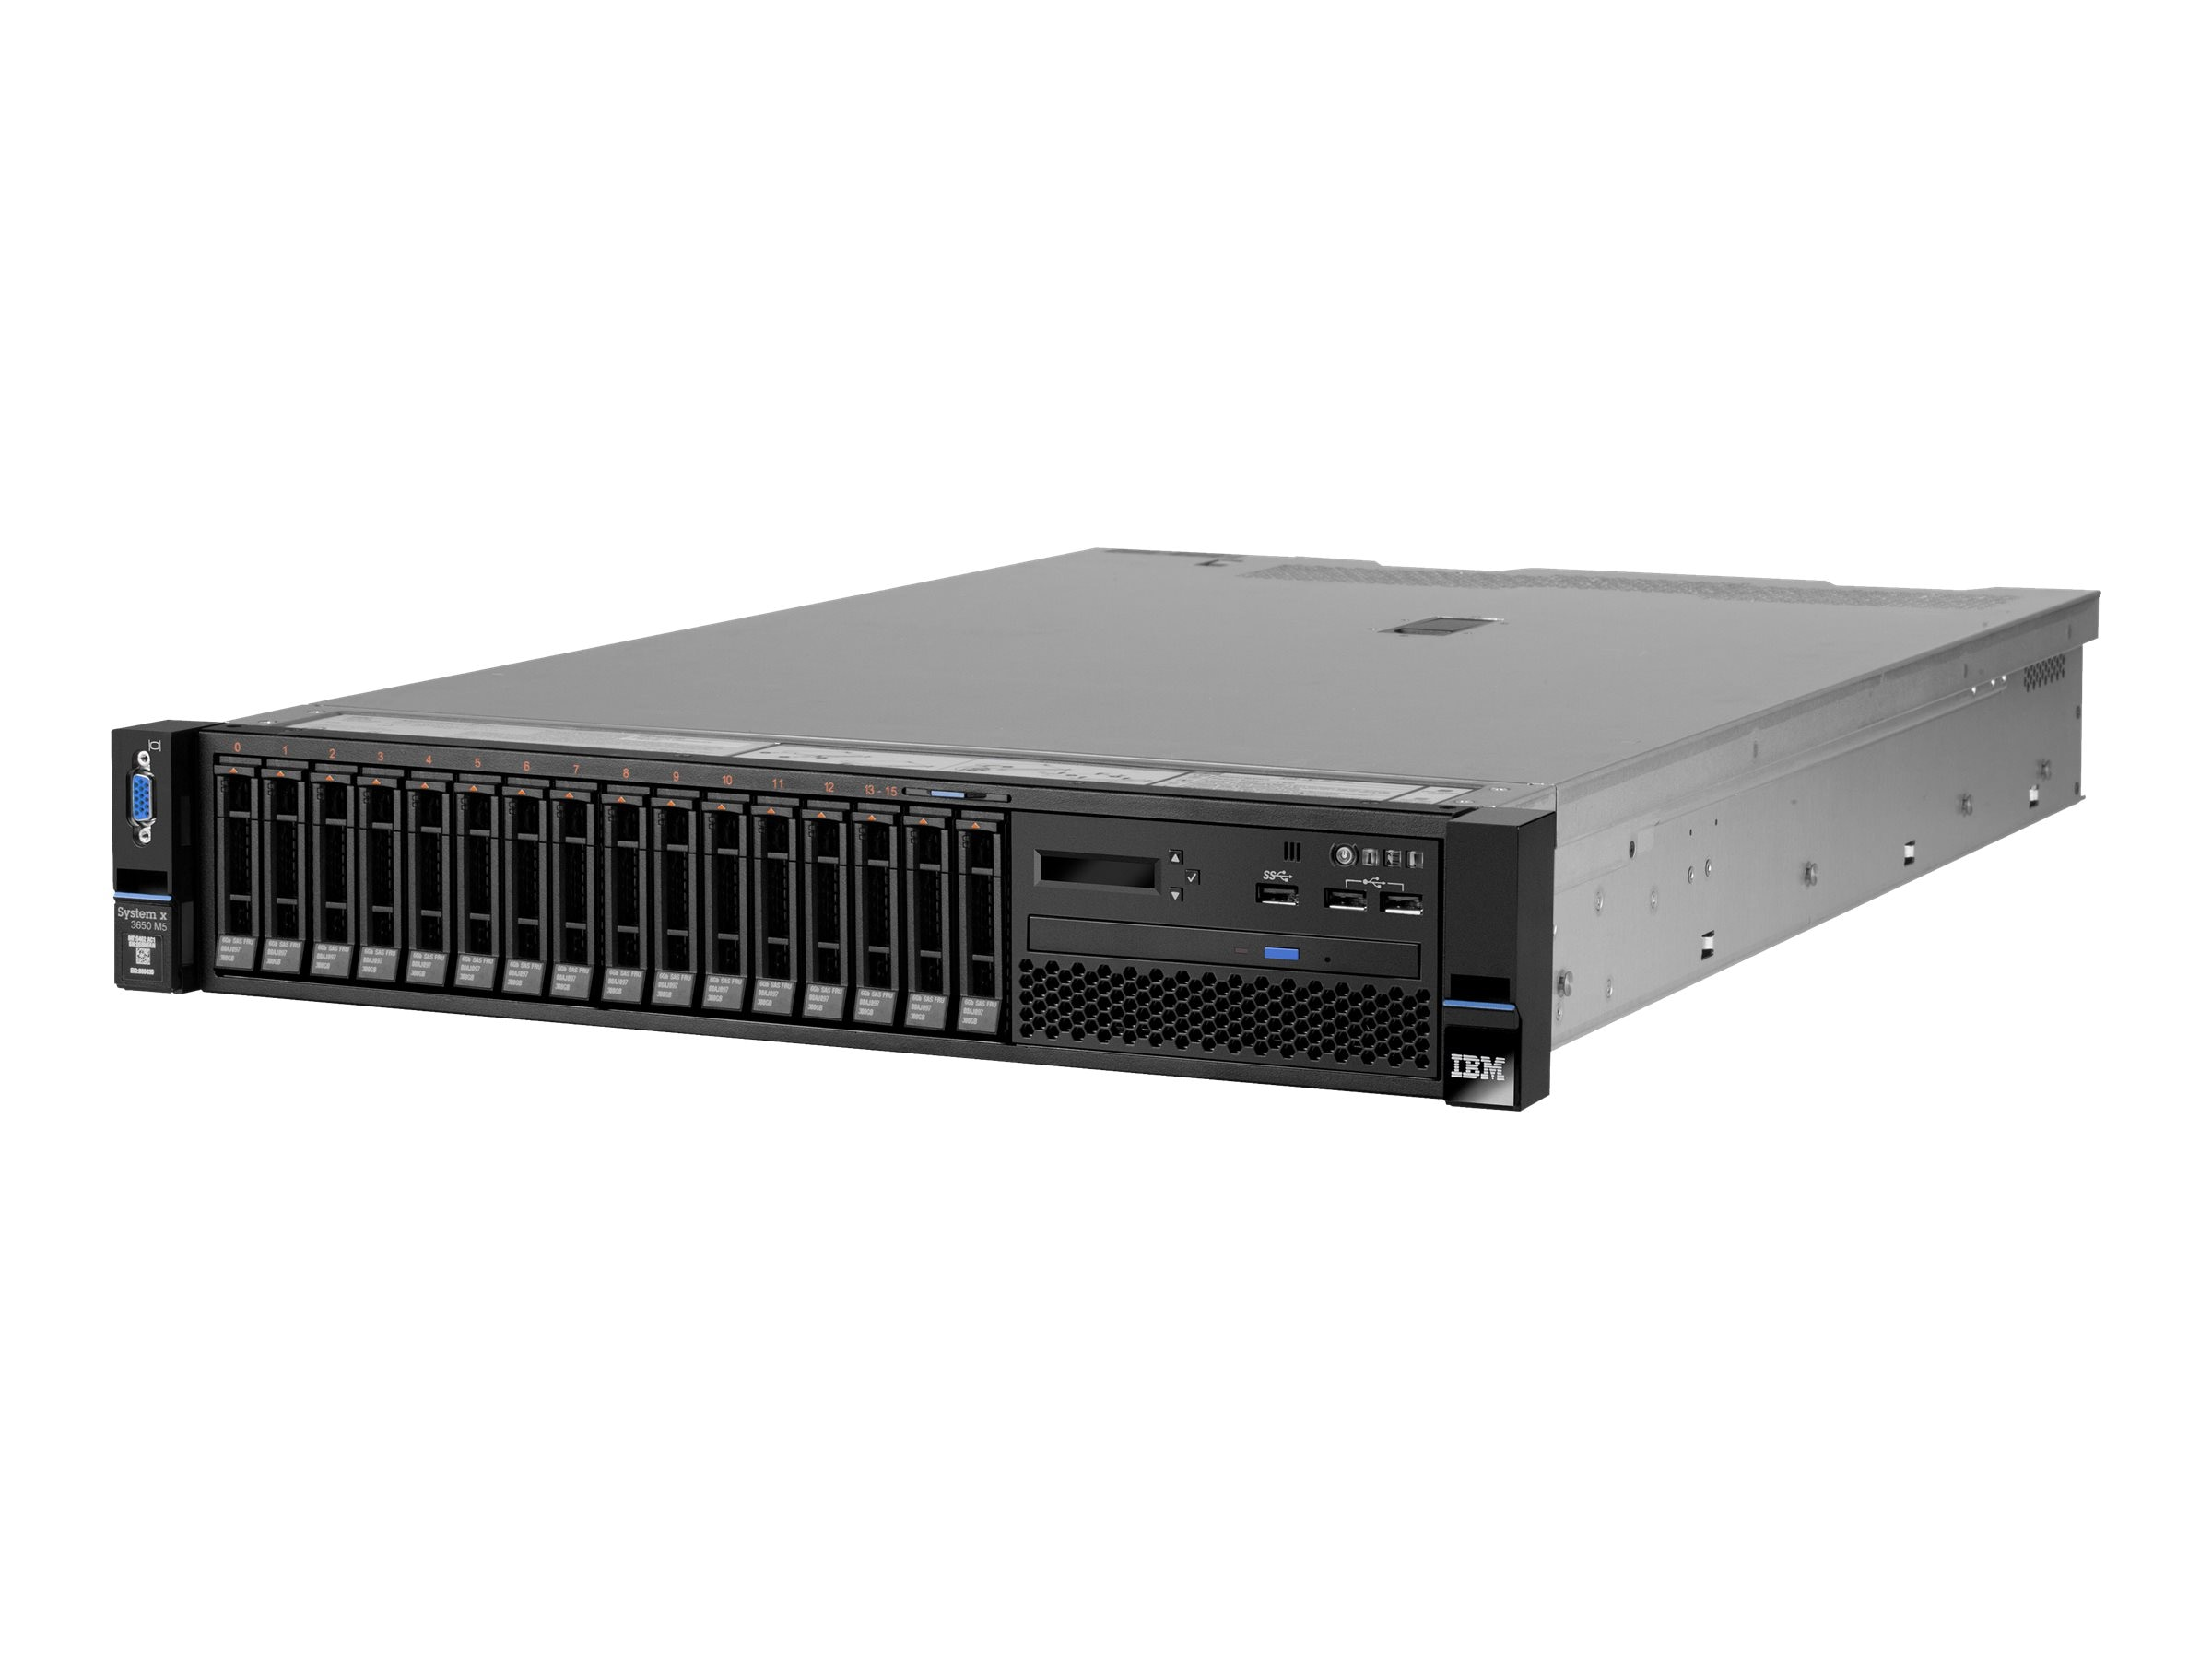 IBM System x3650 M5 Intel 2.4GHz Xeon